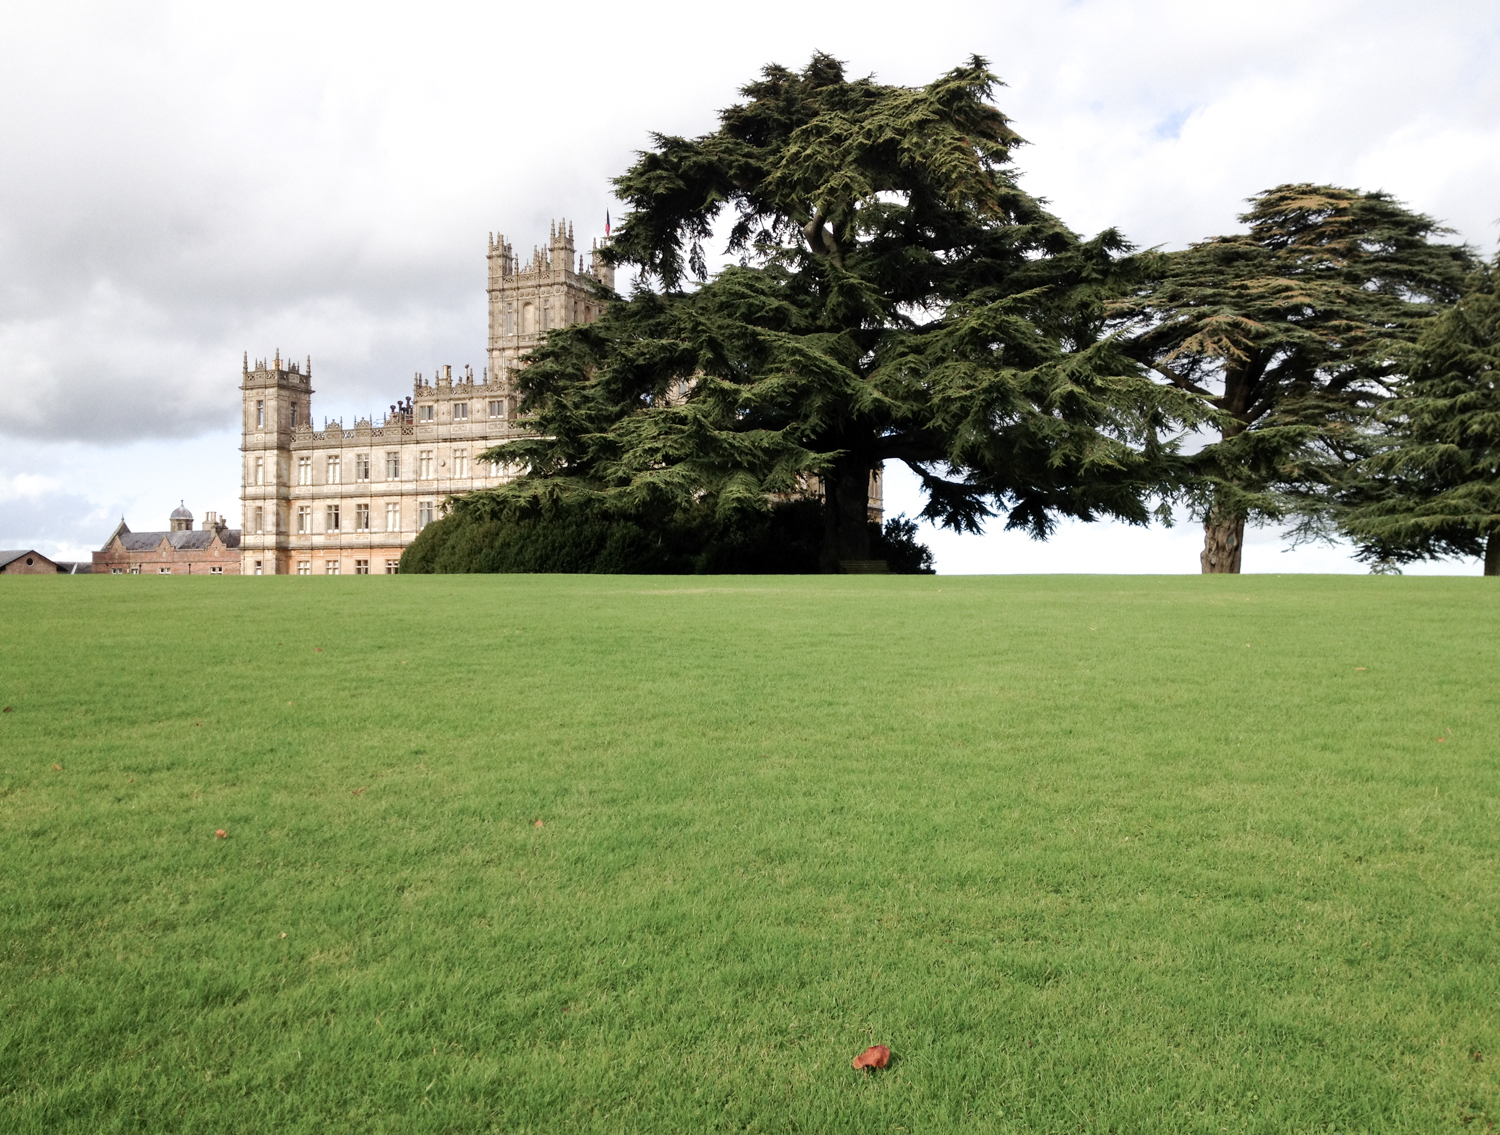 downton_partlandscape-5684.jpg